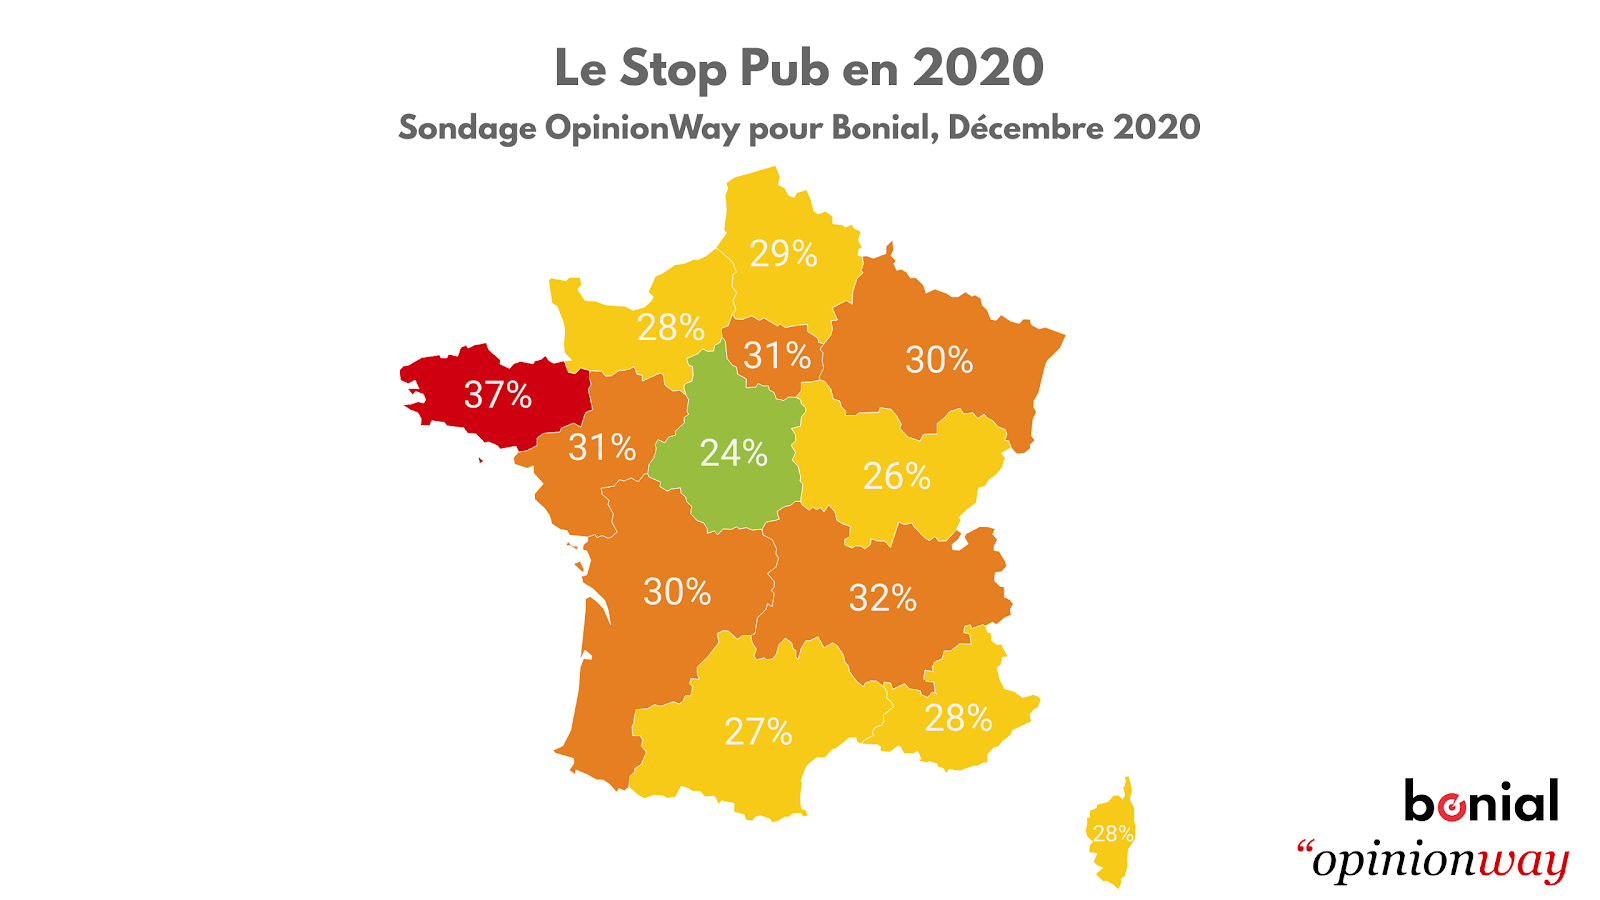 Sondage Opinion way prospectus carte de france stop pub